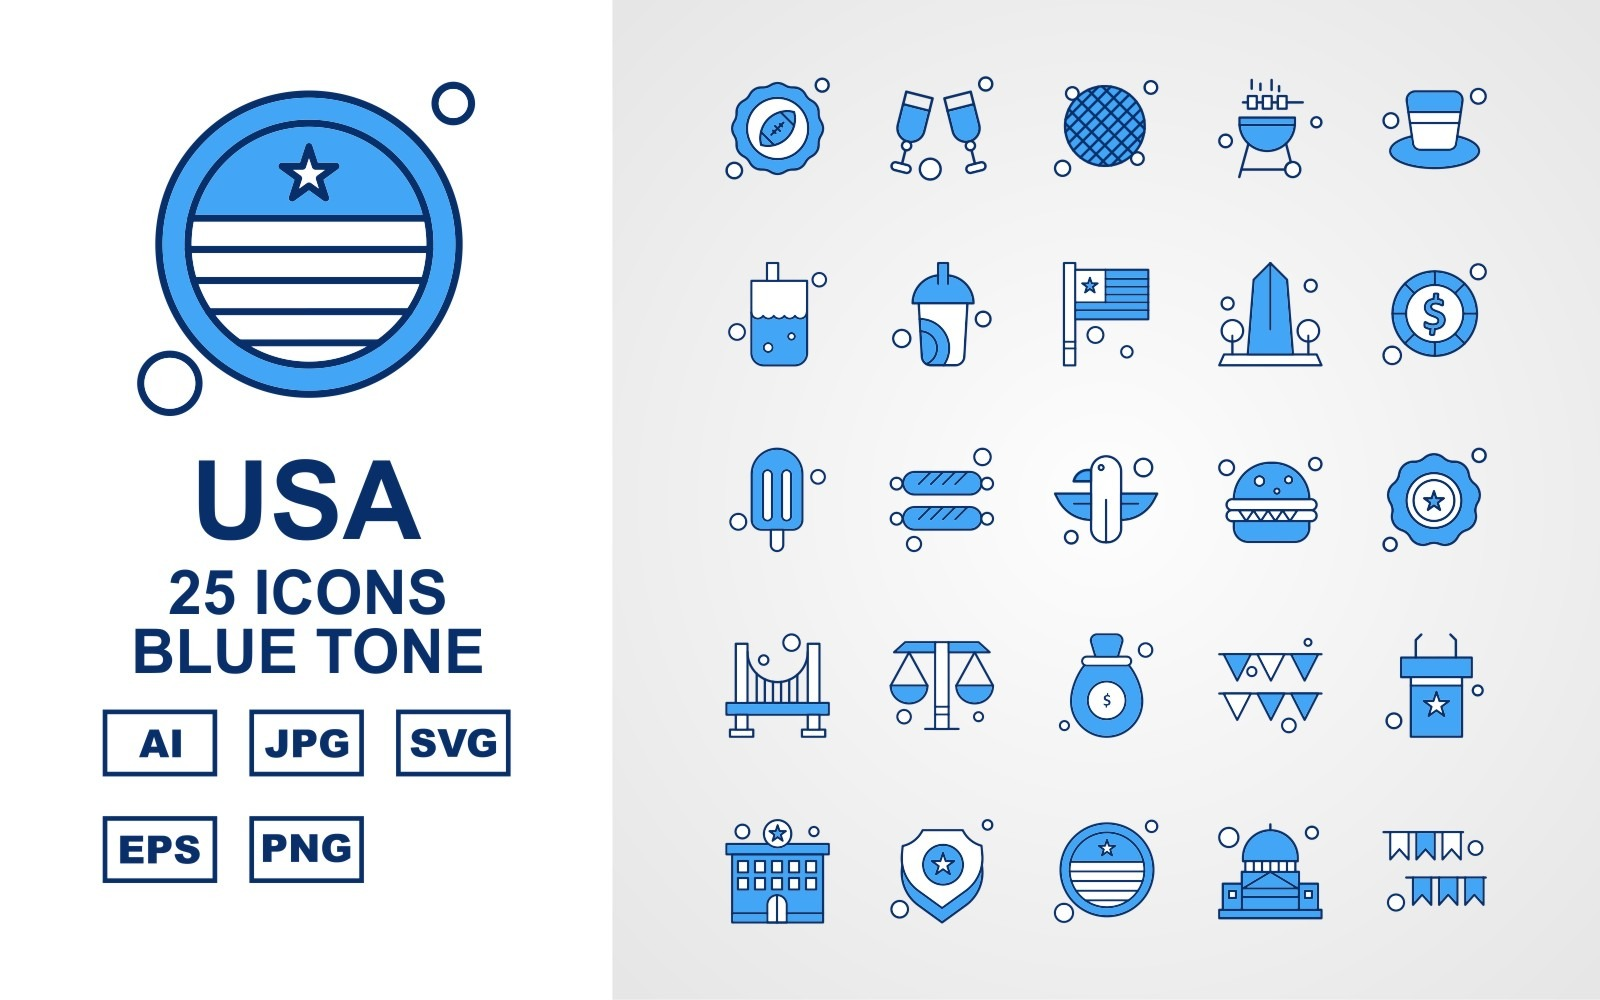 25 Premium USA Blue Tone Icon Pack Iconset Icon Sets 164742